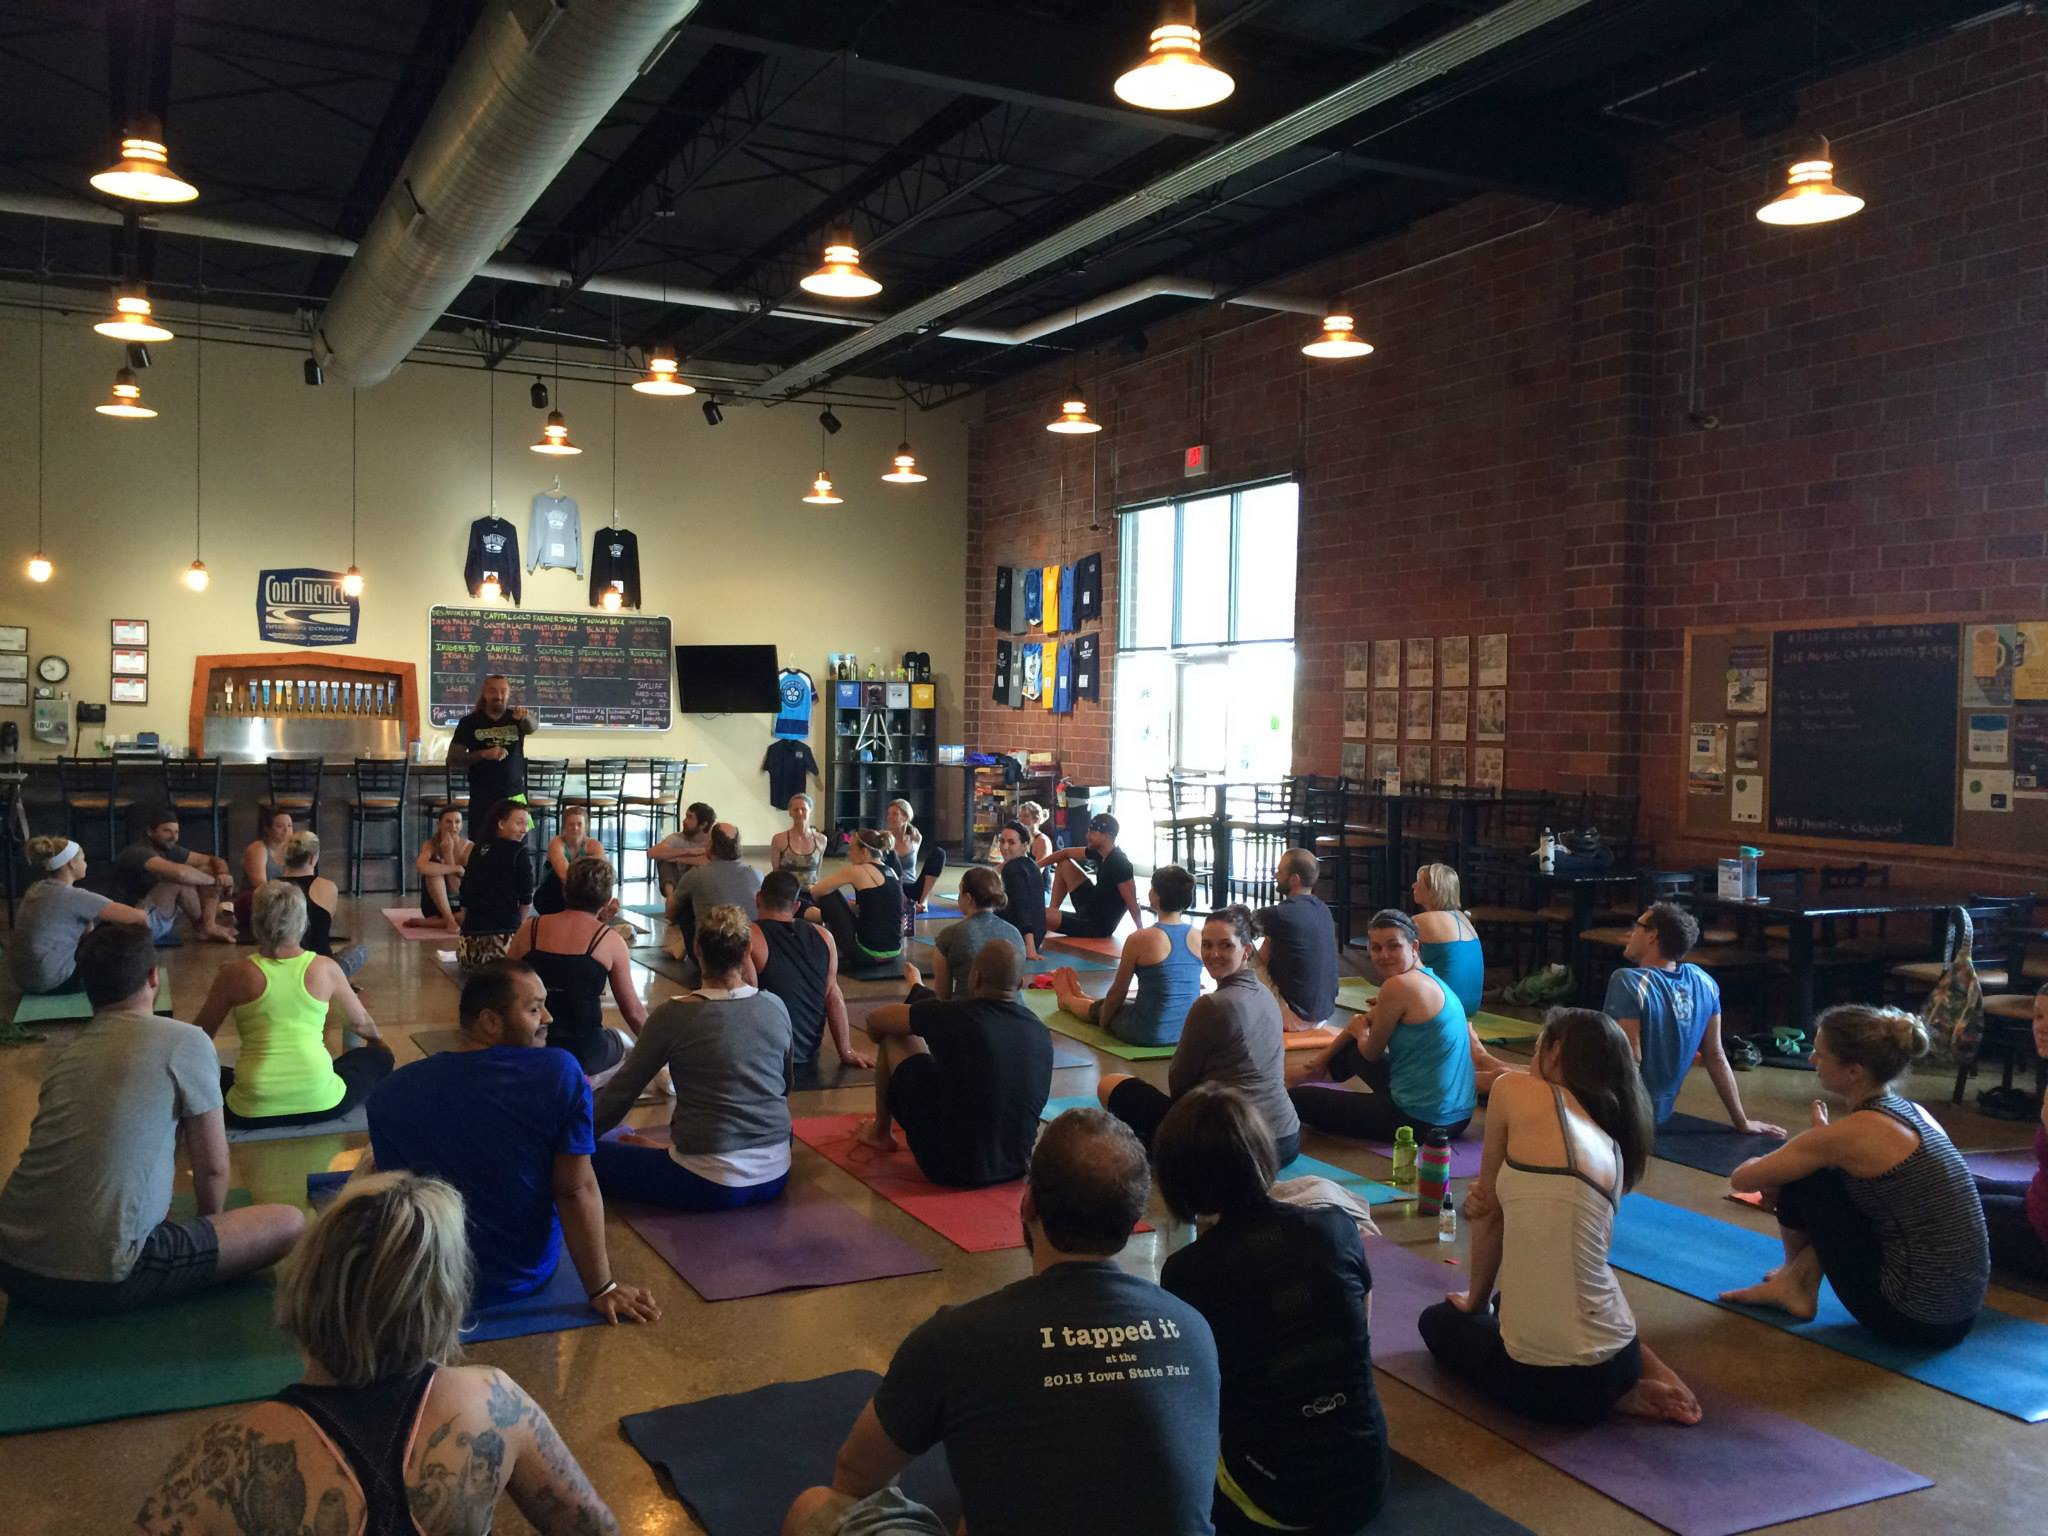 OUTLAW YOGA EVENT AT CONFLUENCE BREWERY